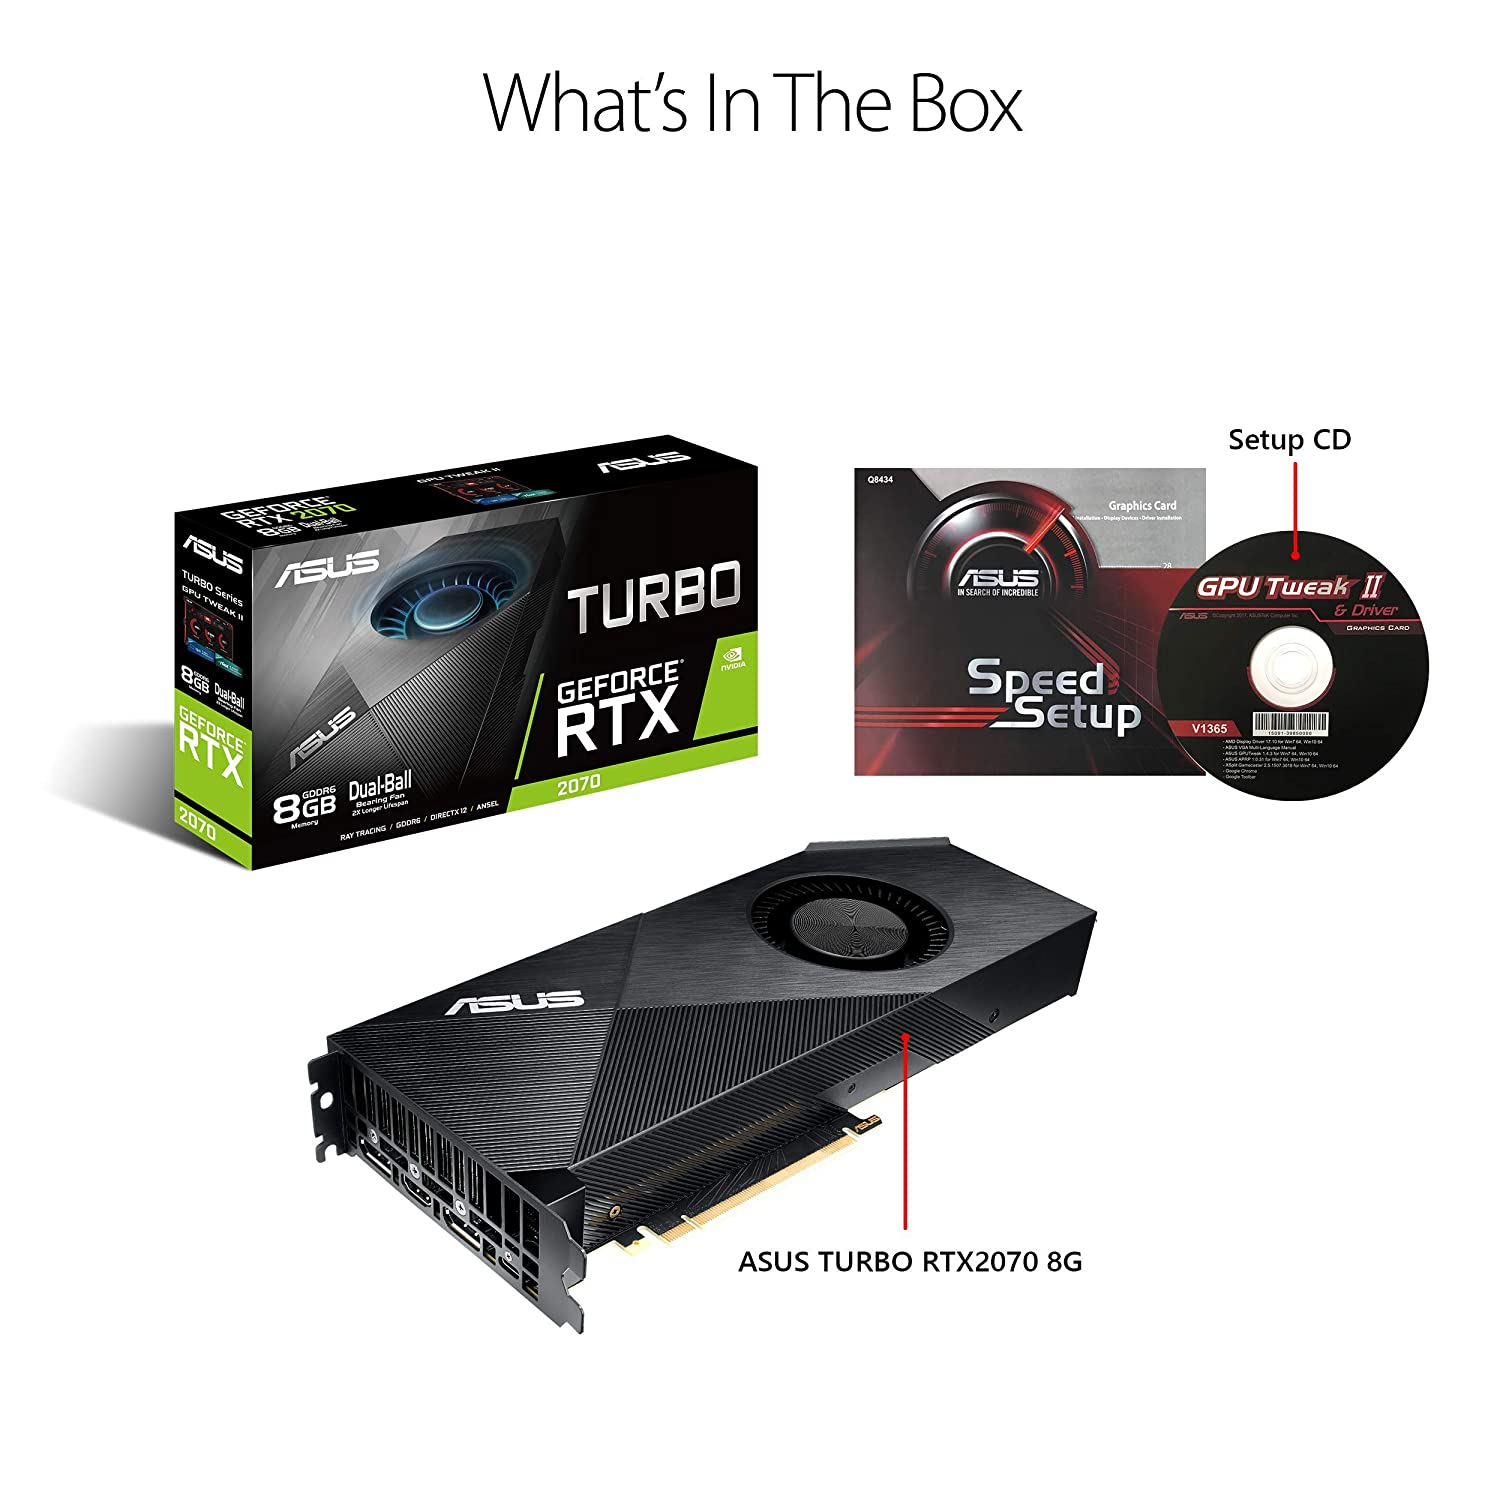 ASUS GeForce RTX 2070 Turbo Edition 8G GDDR6 HDMI DP USB Type-C Graphics  Card (TURBO-RTX2070-8G)